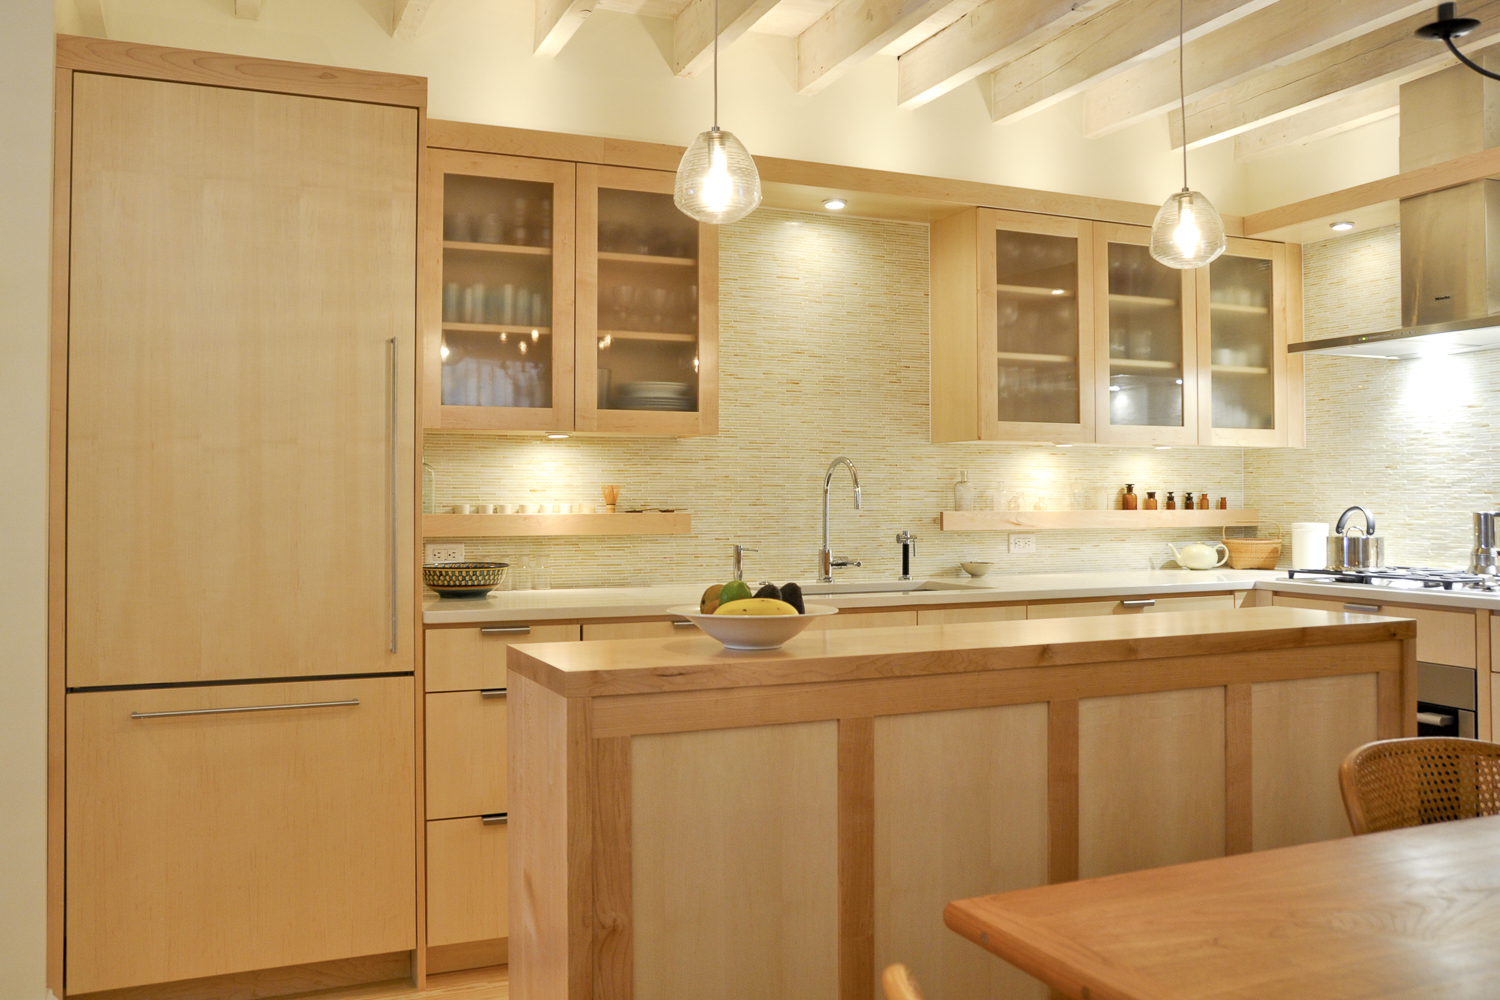 lombard_kitchen-2.jpg